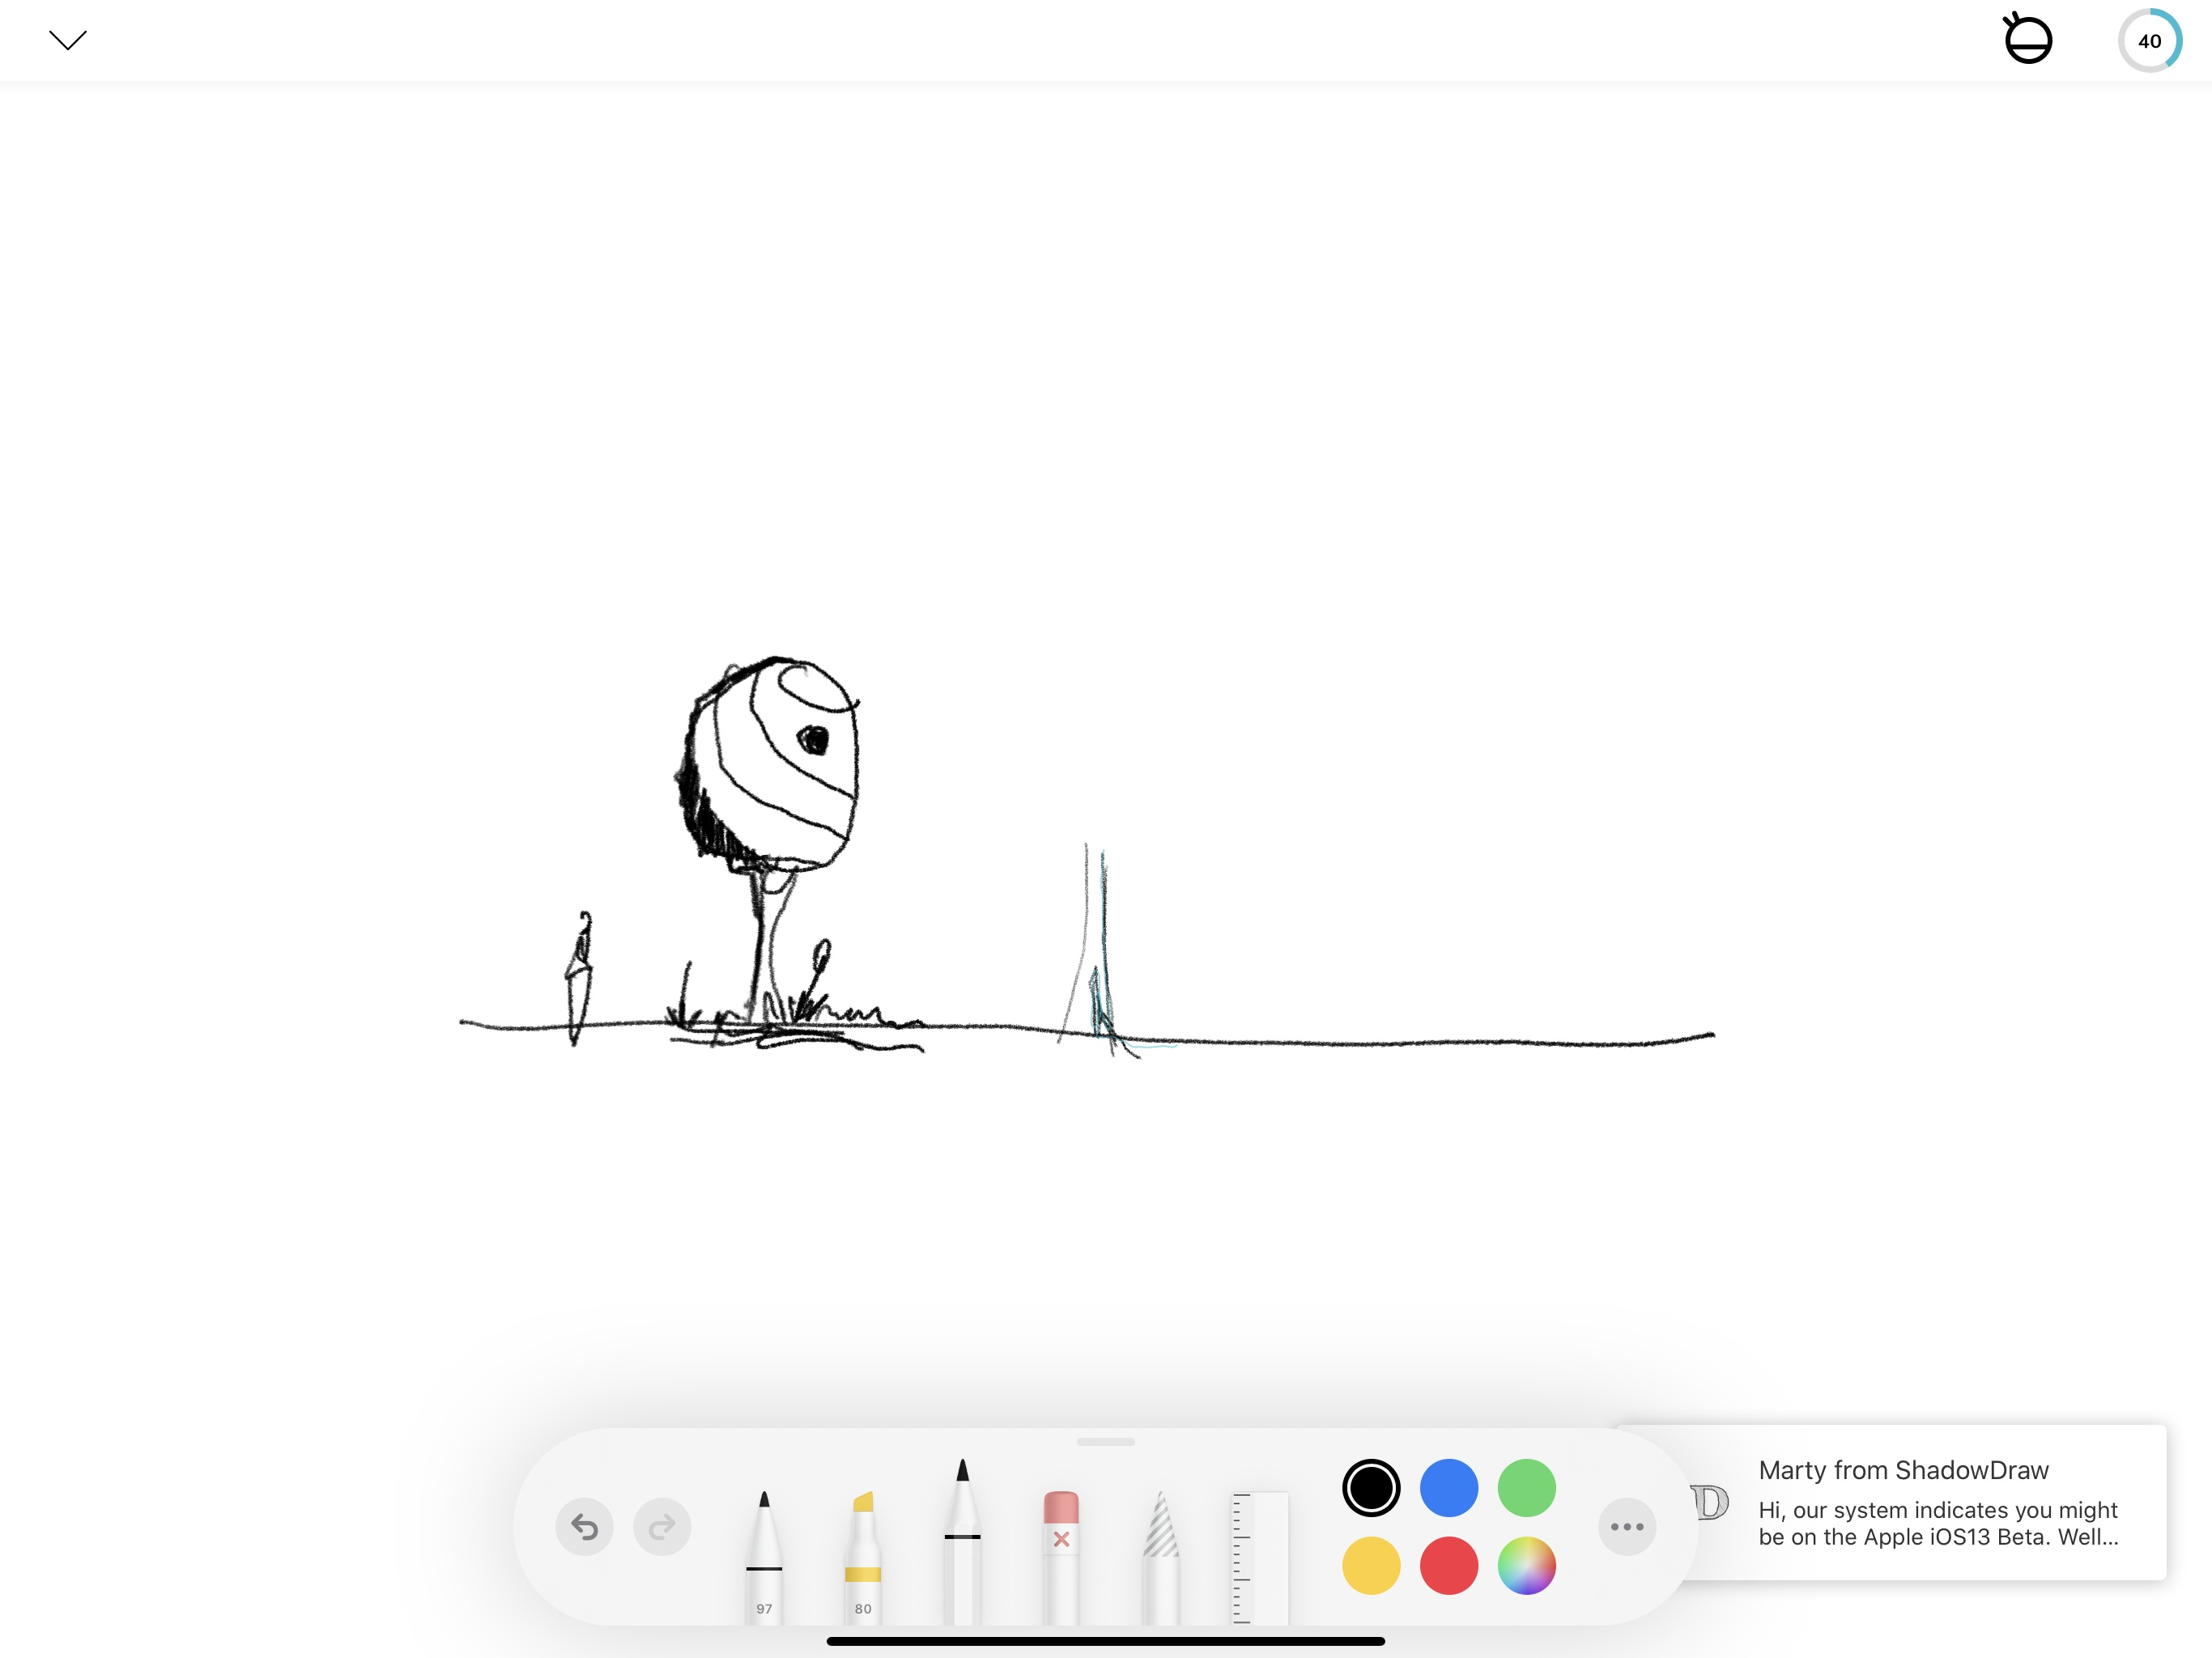 The latest version of ShadowDraw implements PencilKit support for sketching in the app.